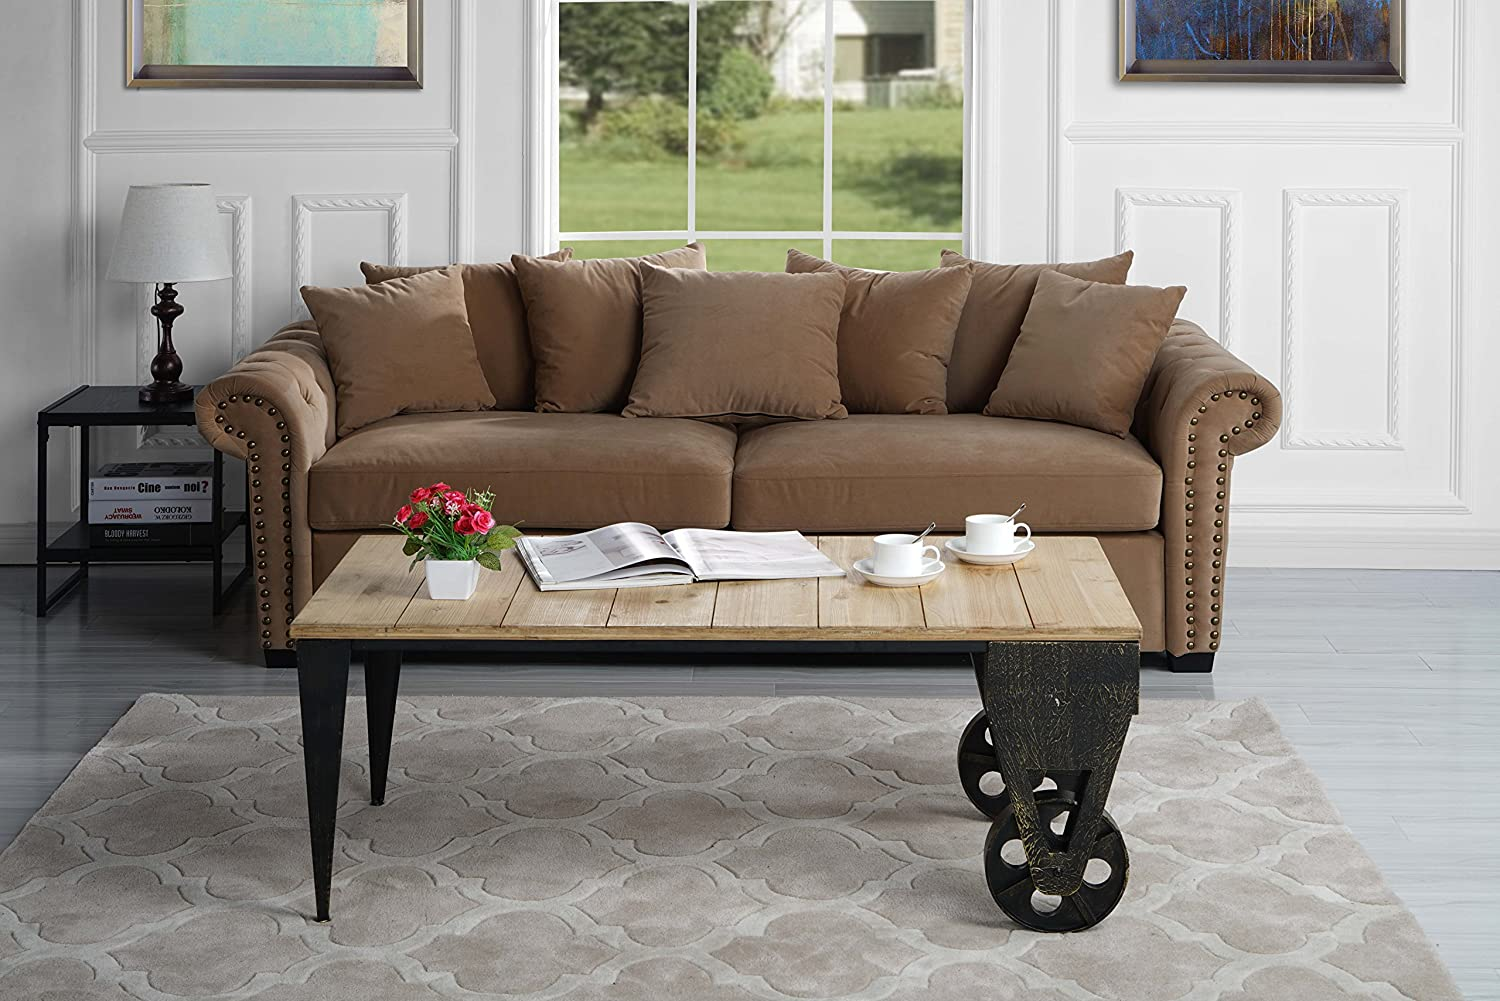 Classic Wood Plank Metal Cart Coffee Table with Casters (Light Brown)